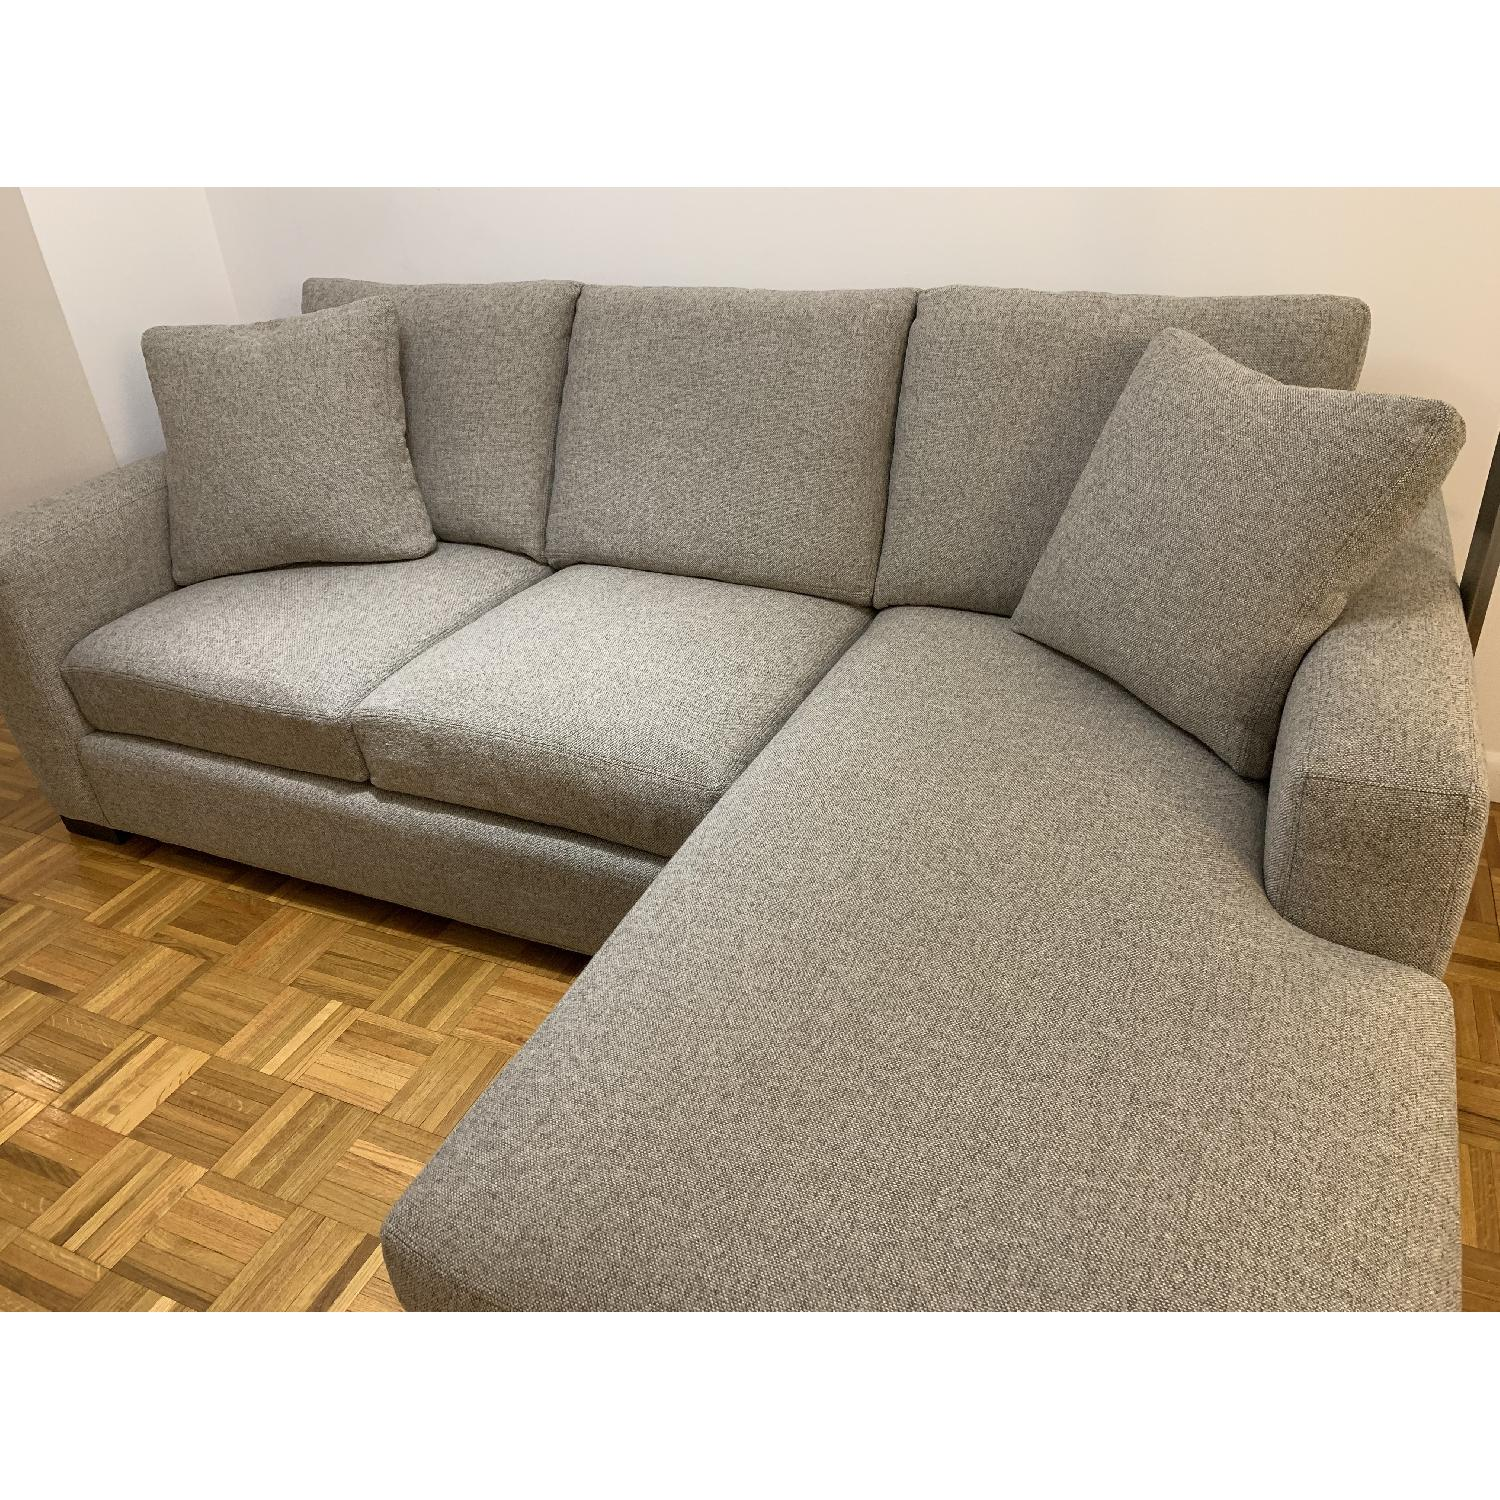 Room & Board Sectional Sofa w/ Reversible Chaise-7